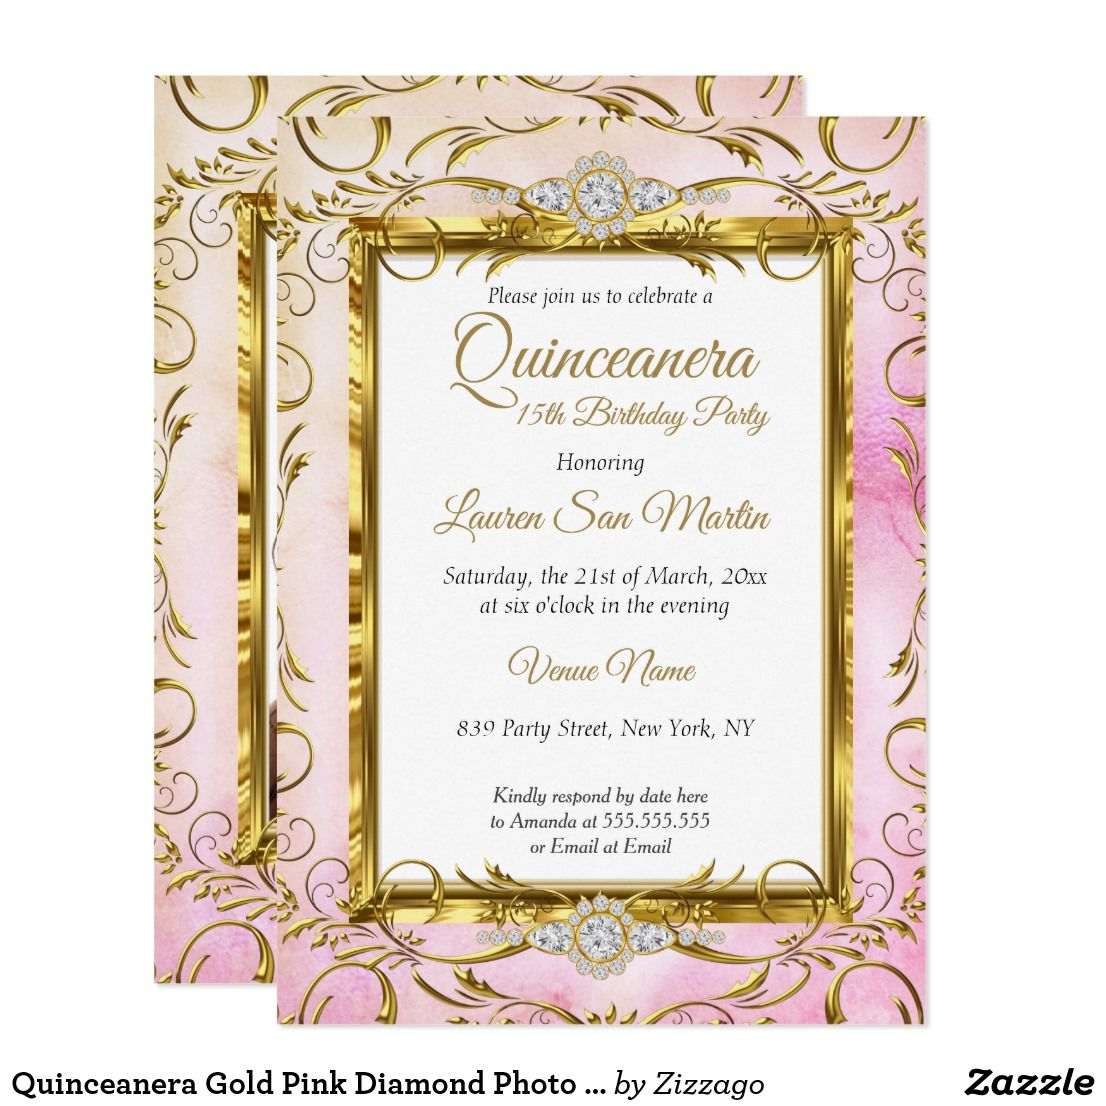 400+ Best Quinceañera Invitations and Ideas images | quinceanera invitations,  quinceanera, invitations